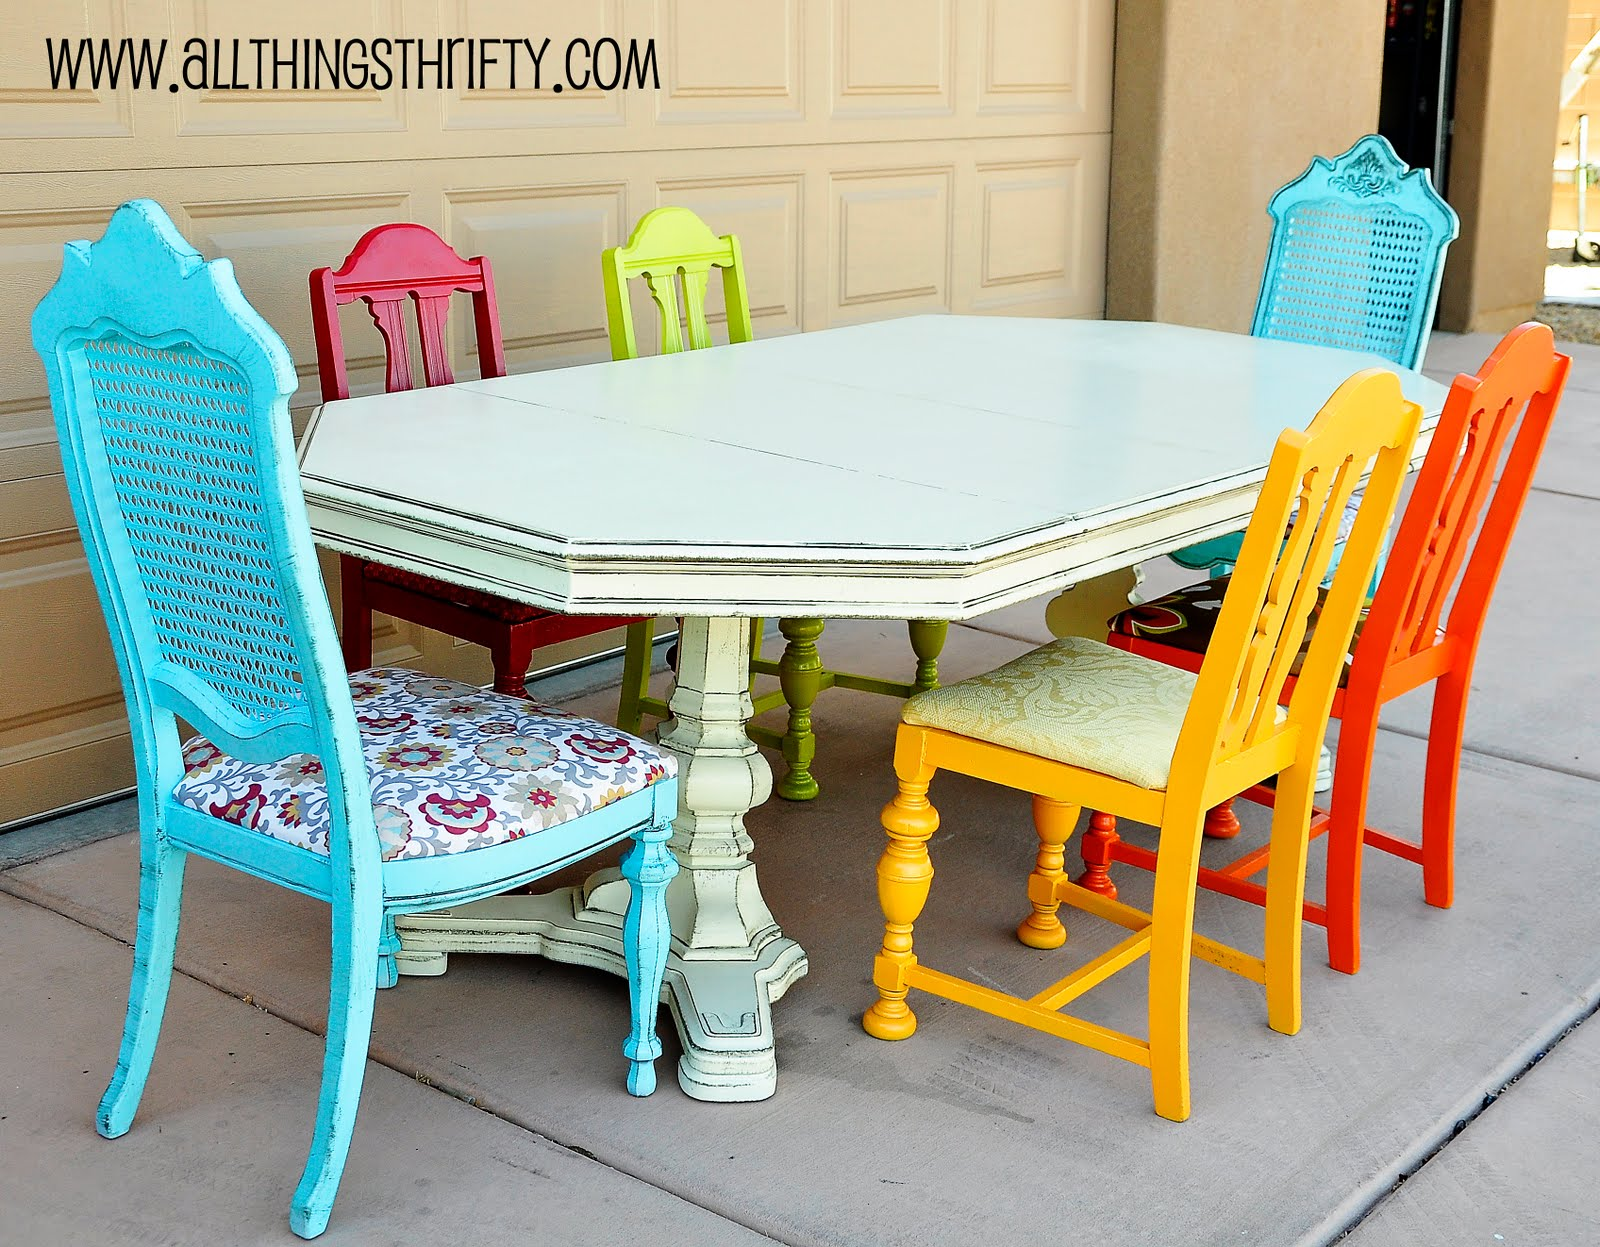 Dining room table transformation for Dining room table and chair ideas